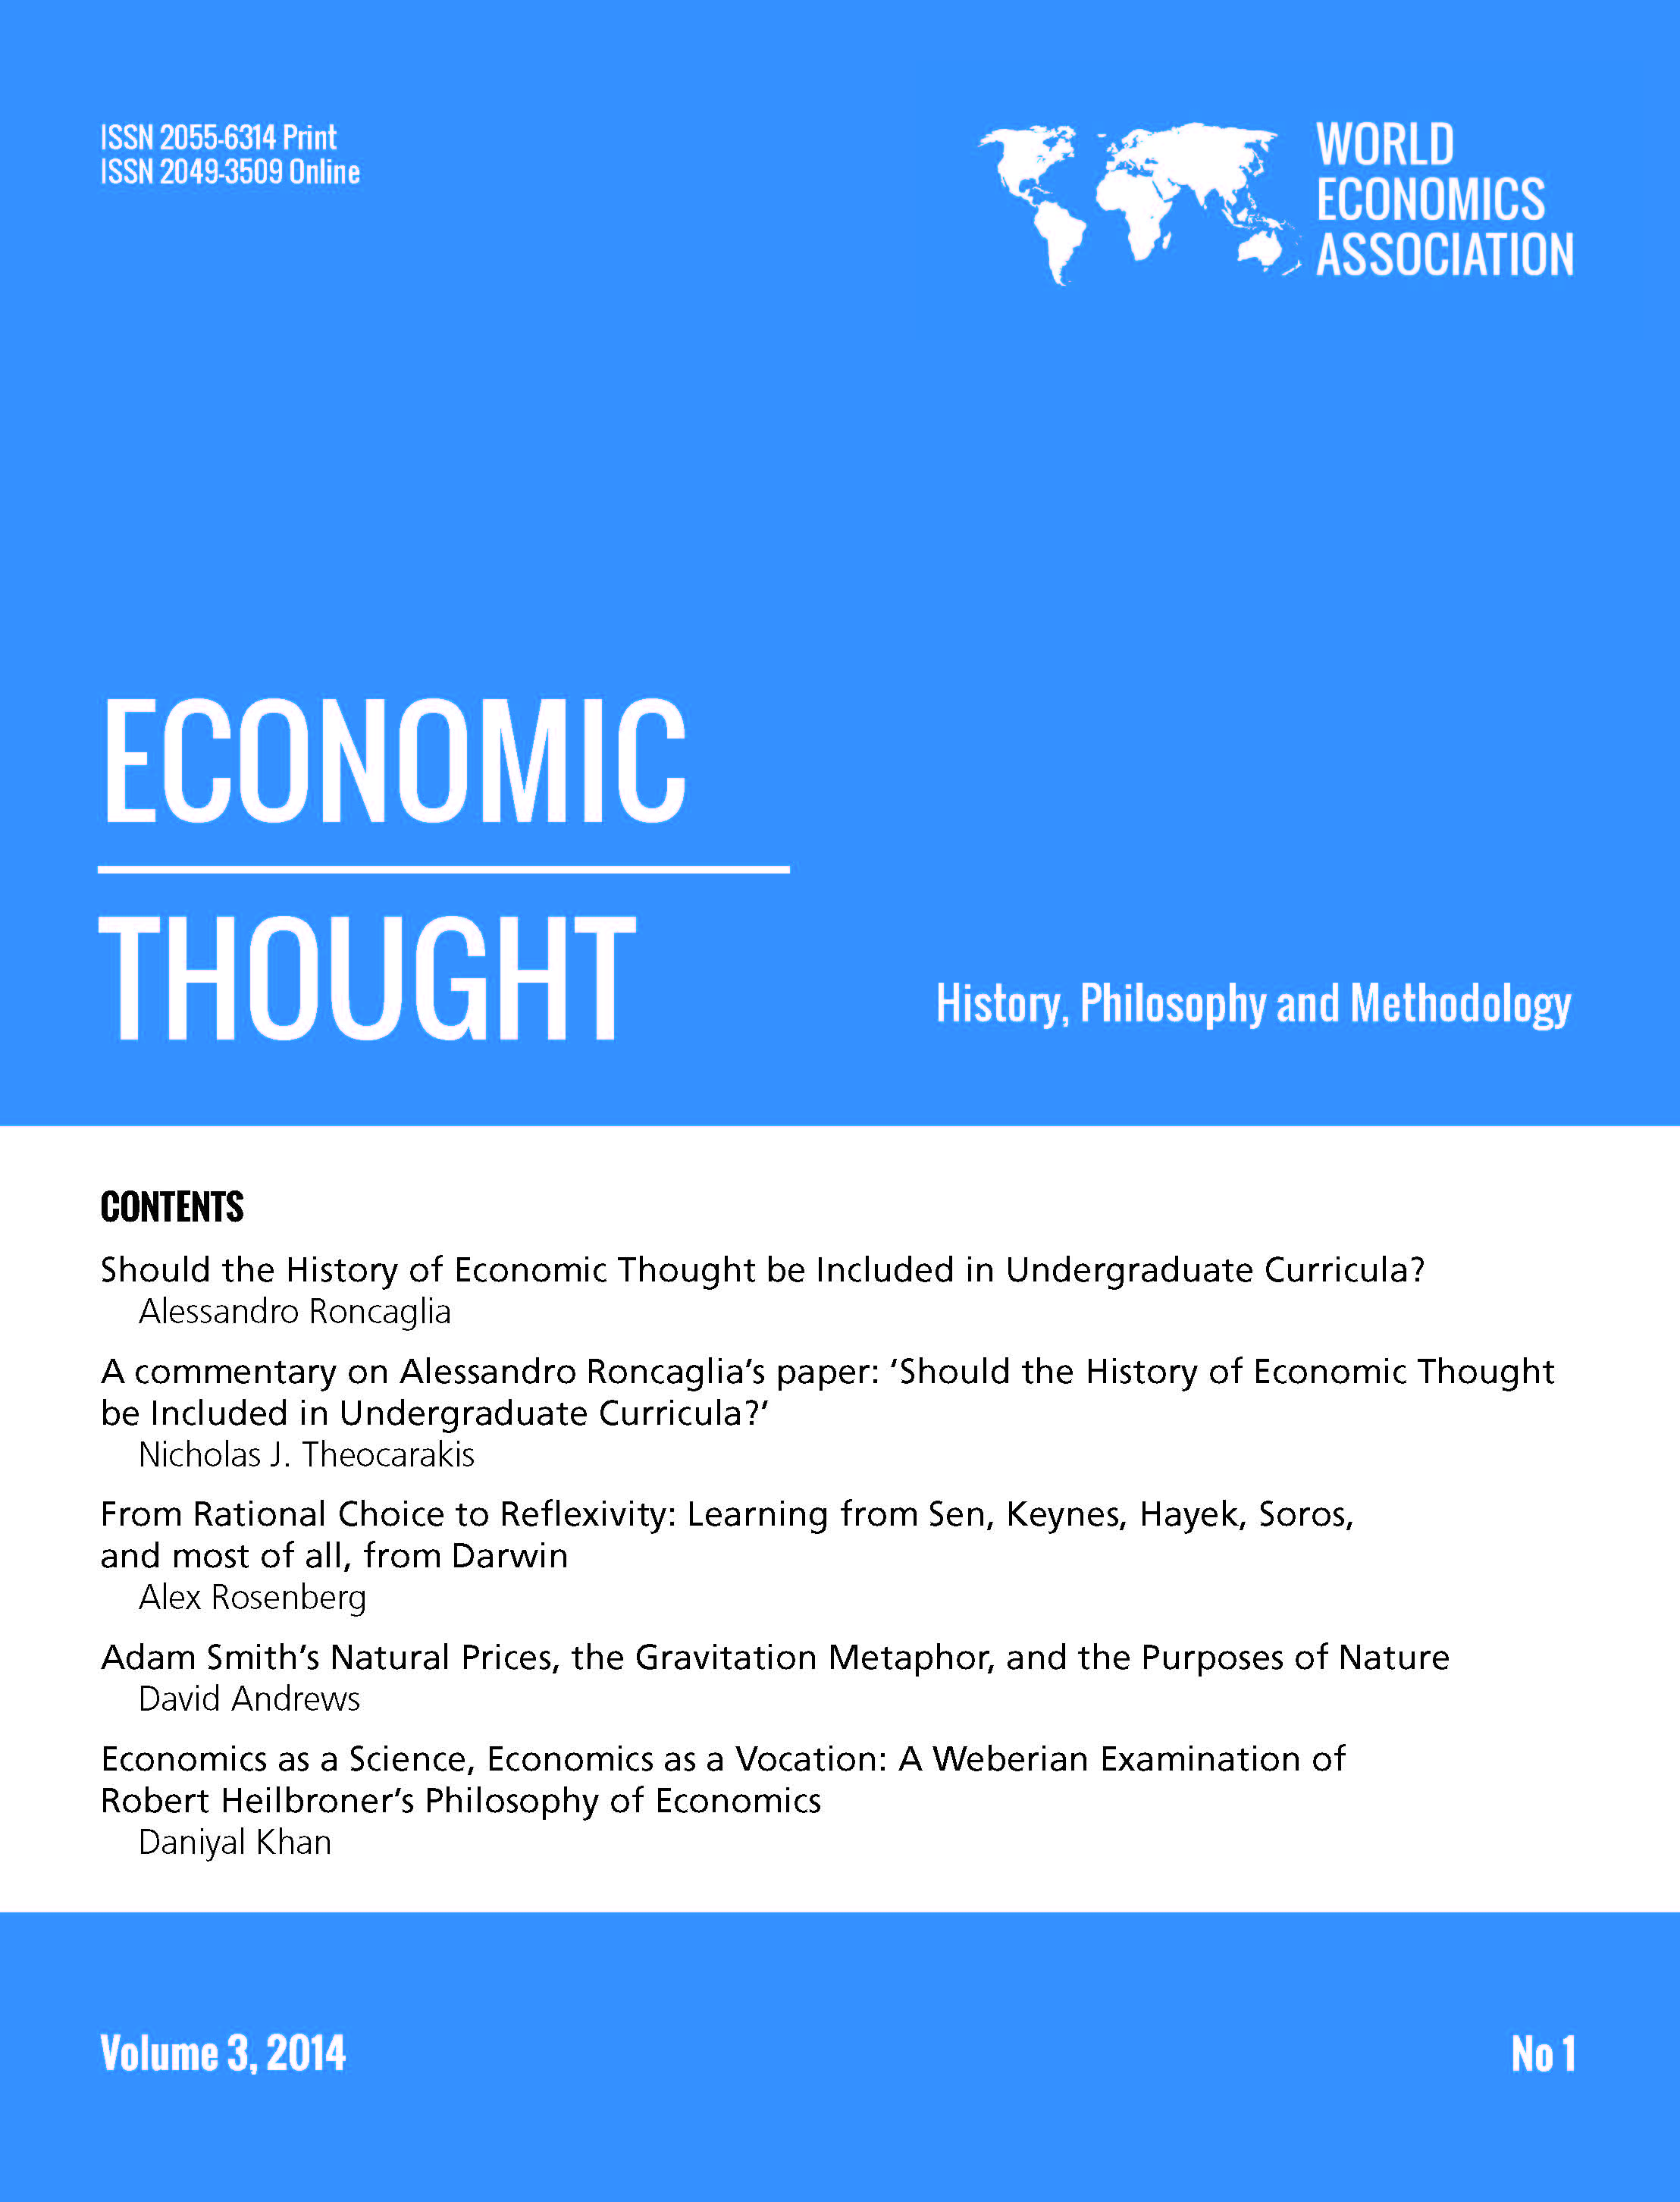 college publications journals we publish papers on the history of economic thought and economic history methodology of economics and philosophy